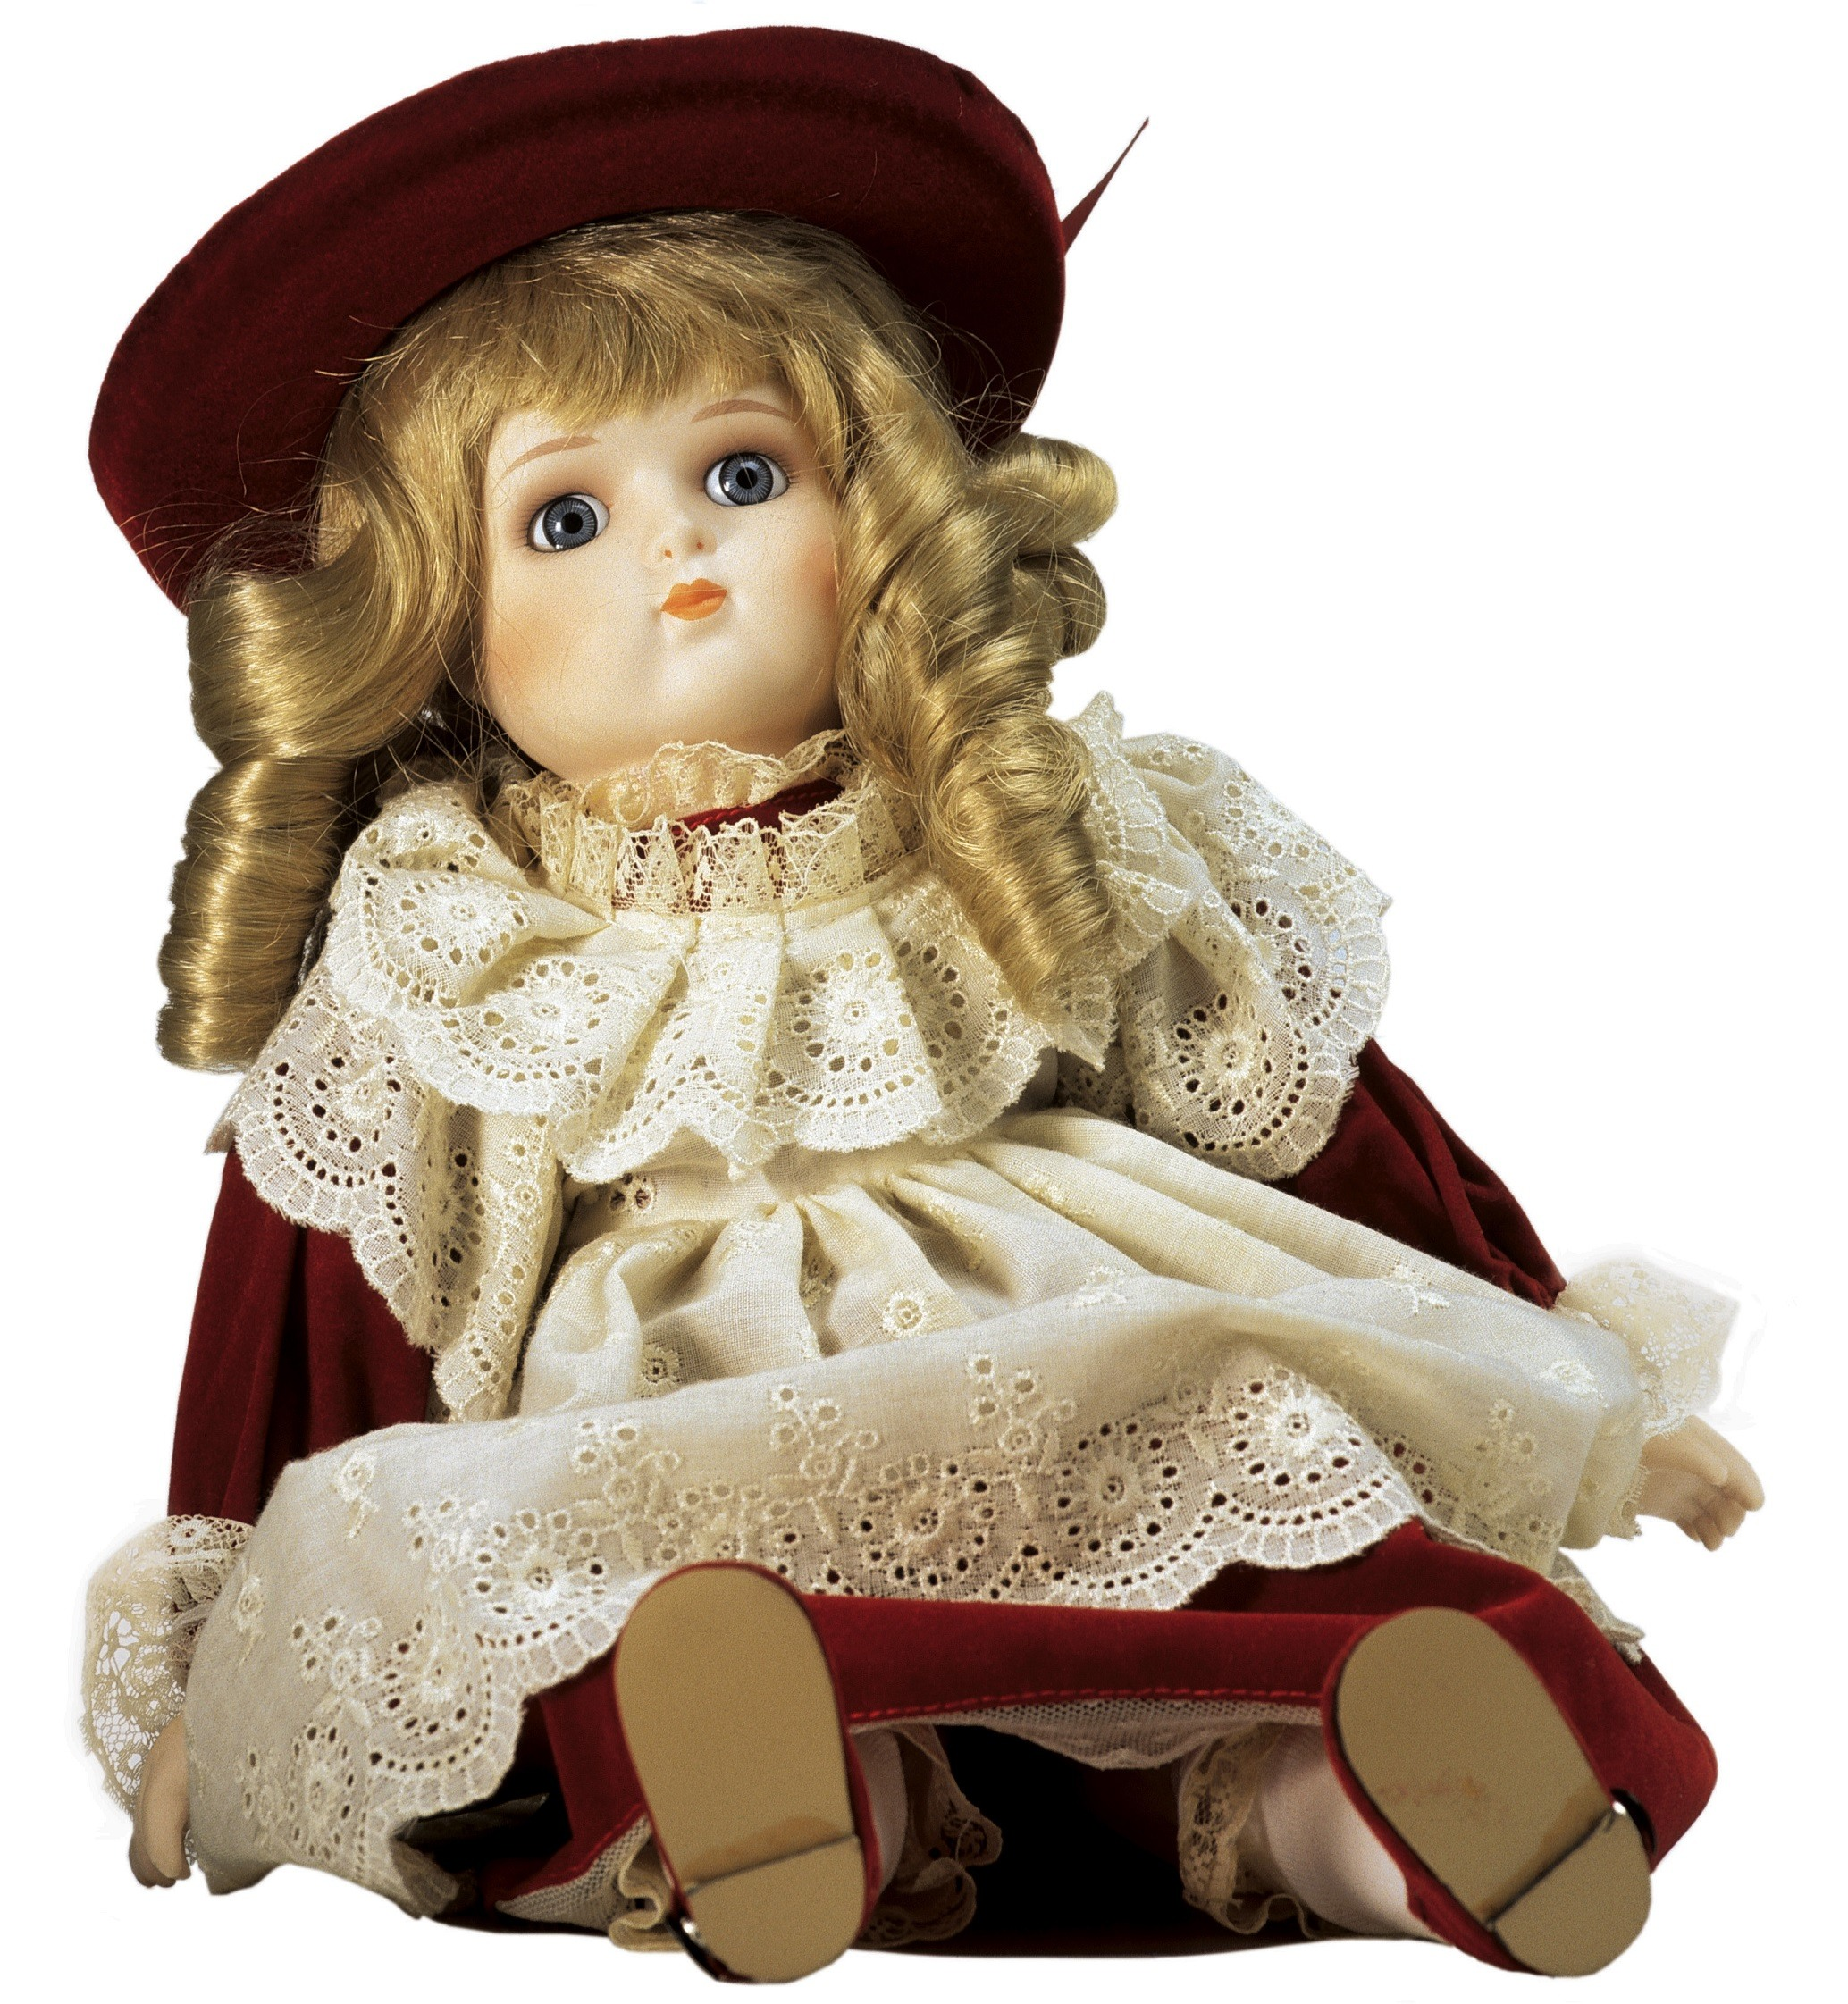 Porcelaine doll in red dress